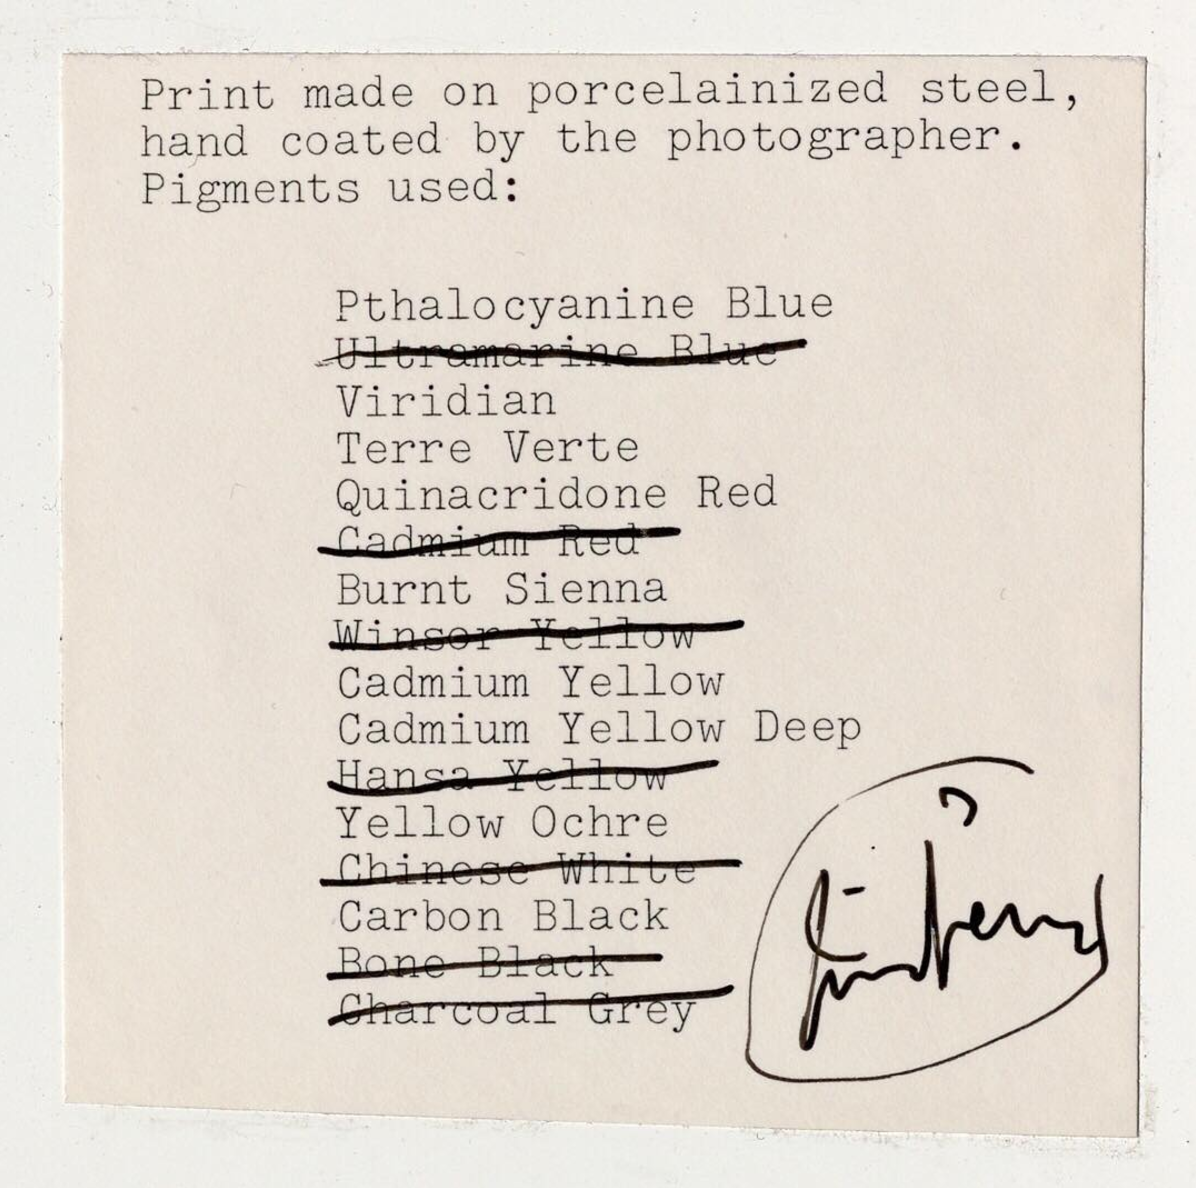 Irving Penn's Notebook B3 Details His Experiments With Print Making